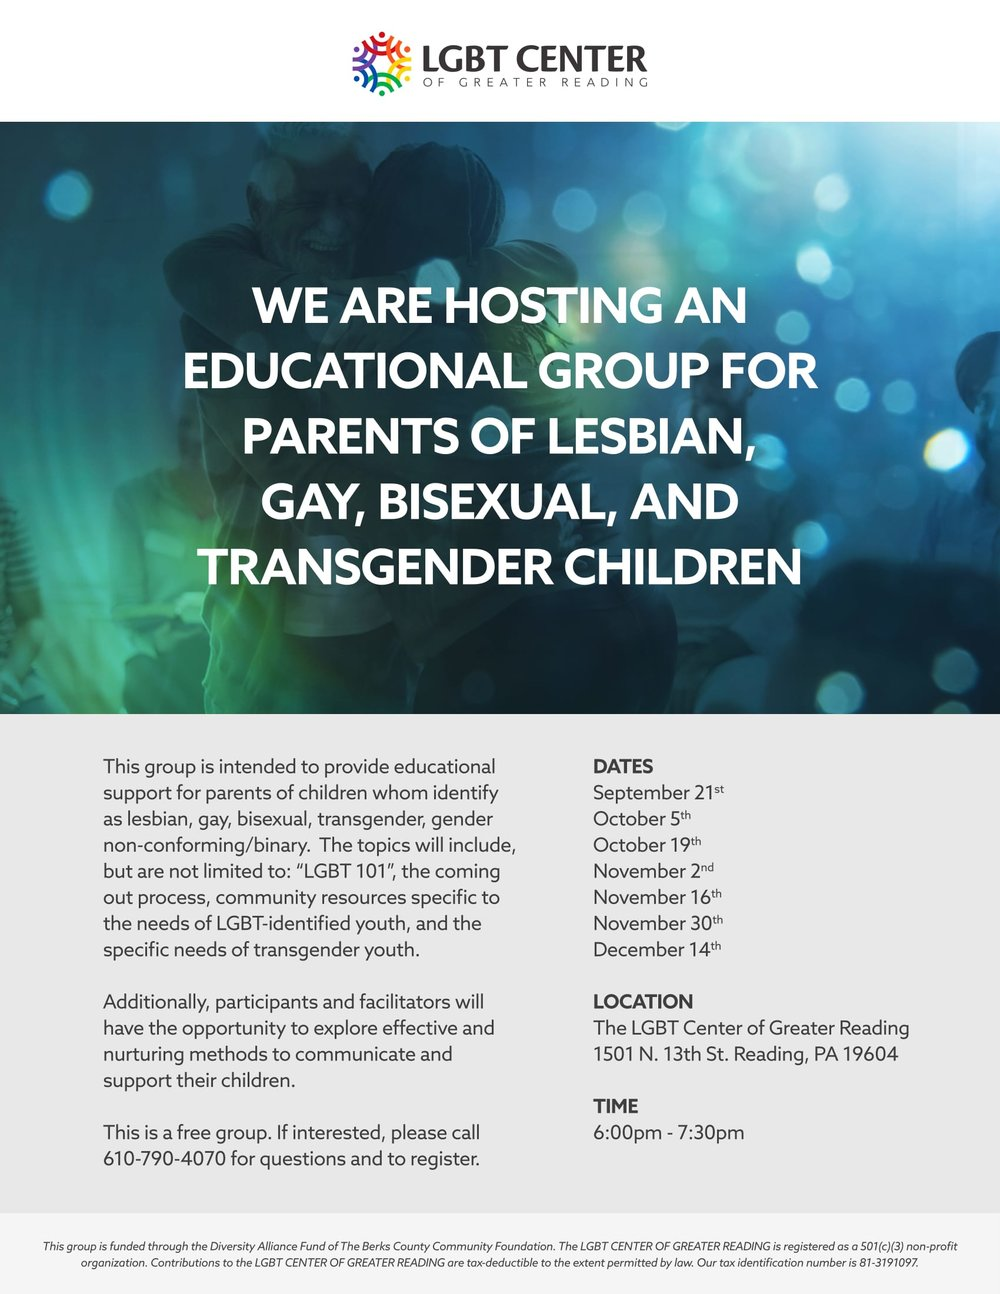 LGBT Parents Group Flyer (1)-1.jpg